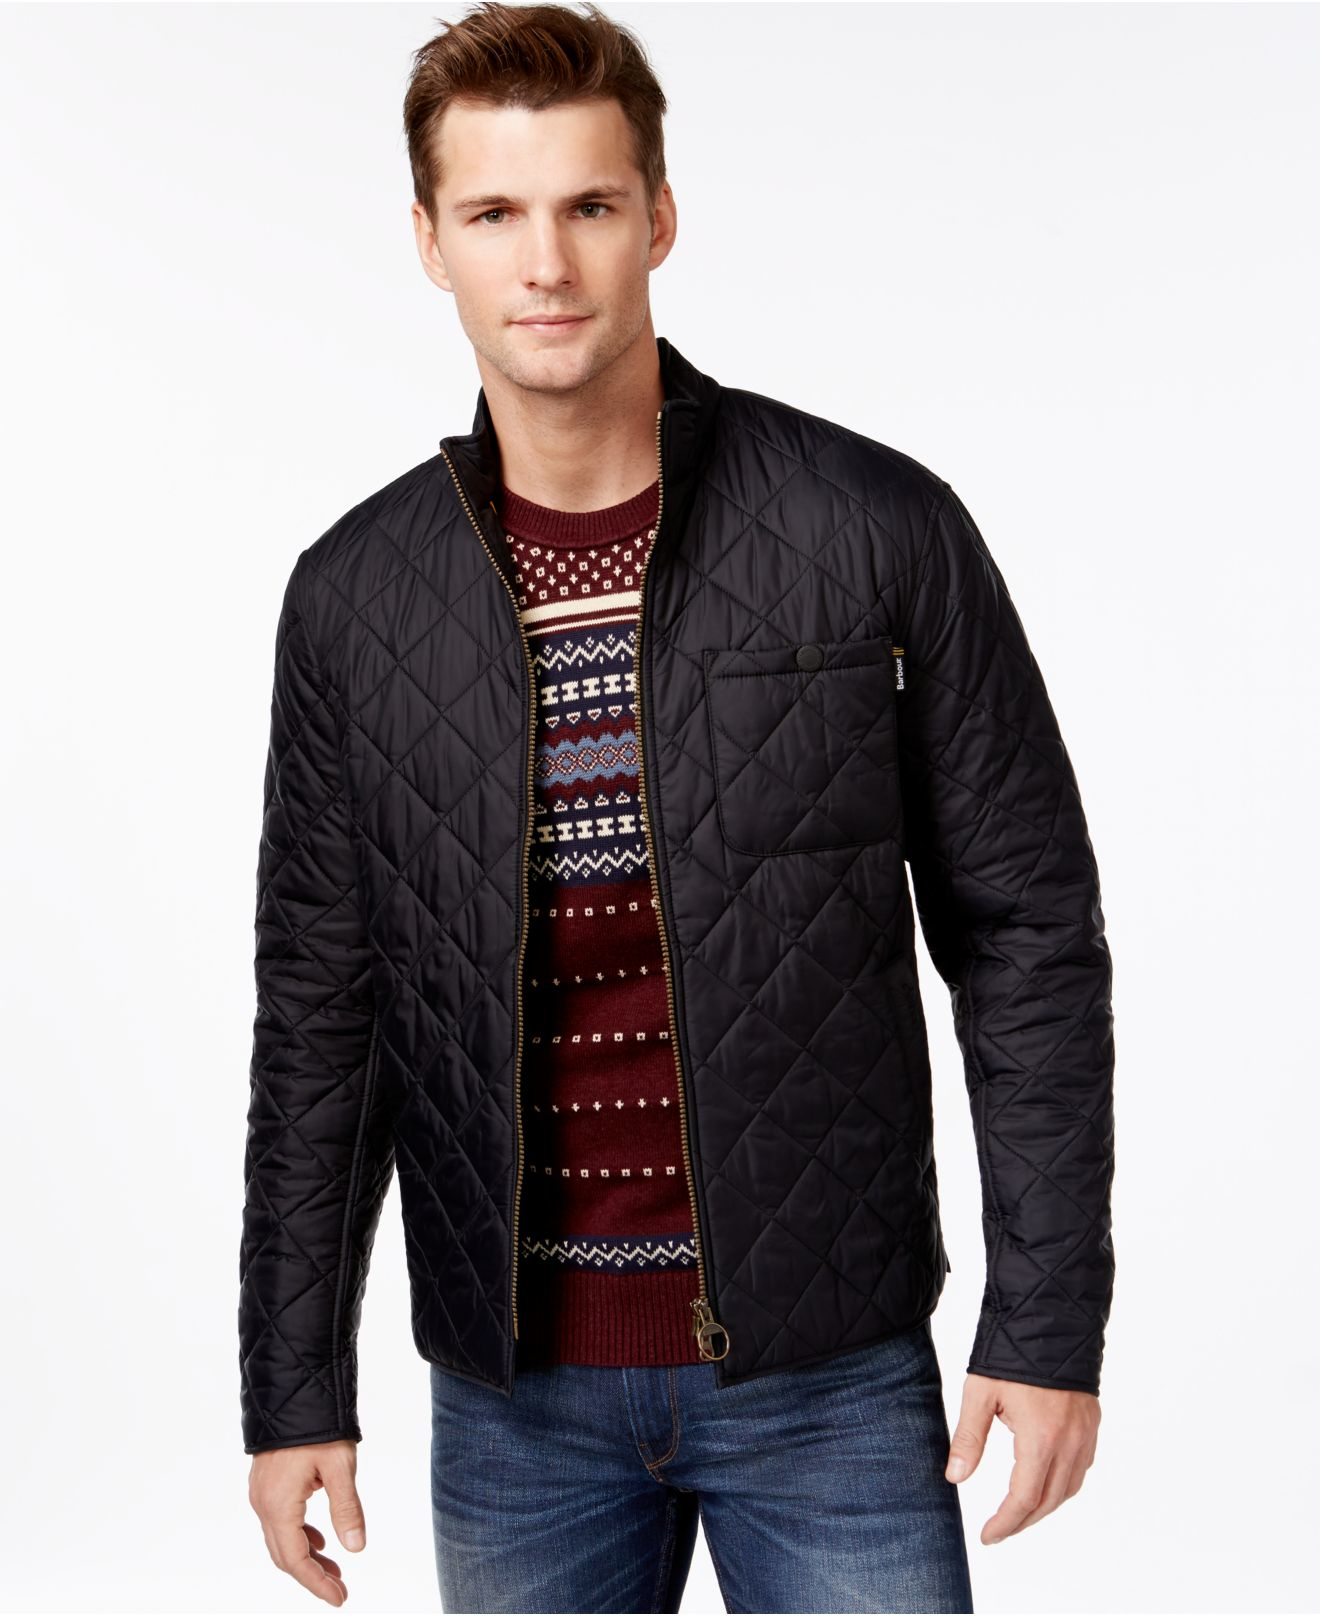 Quilted jacket mens fashion 8